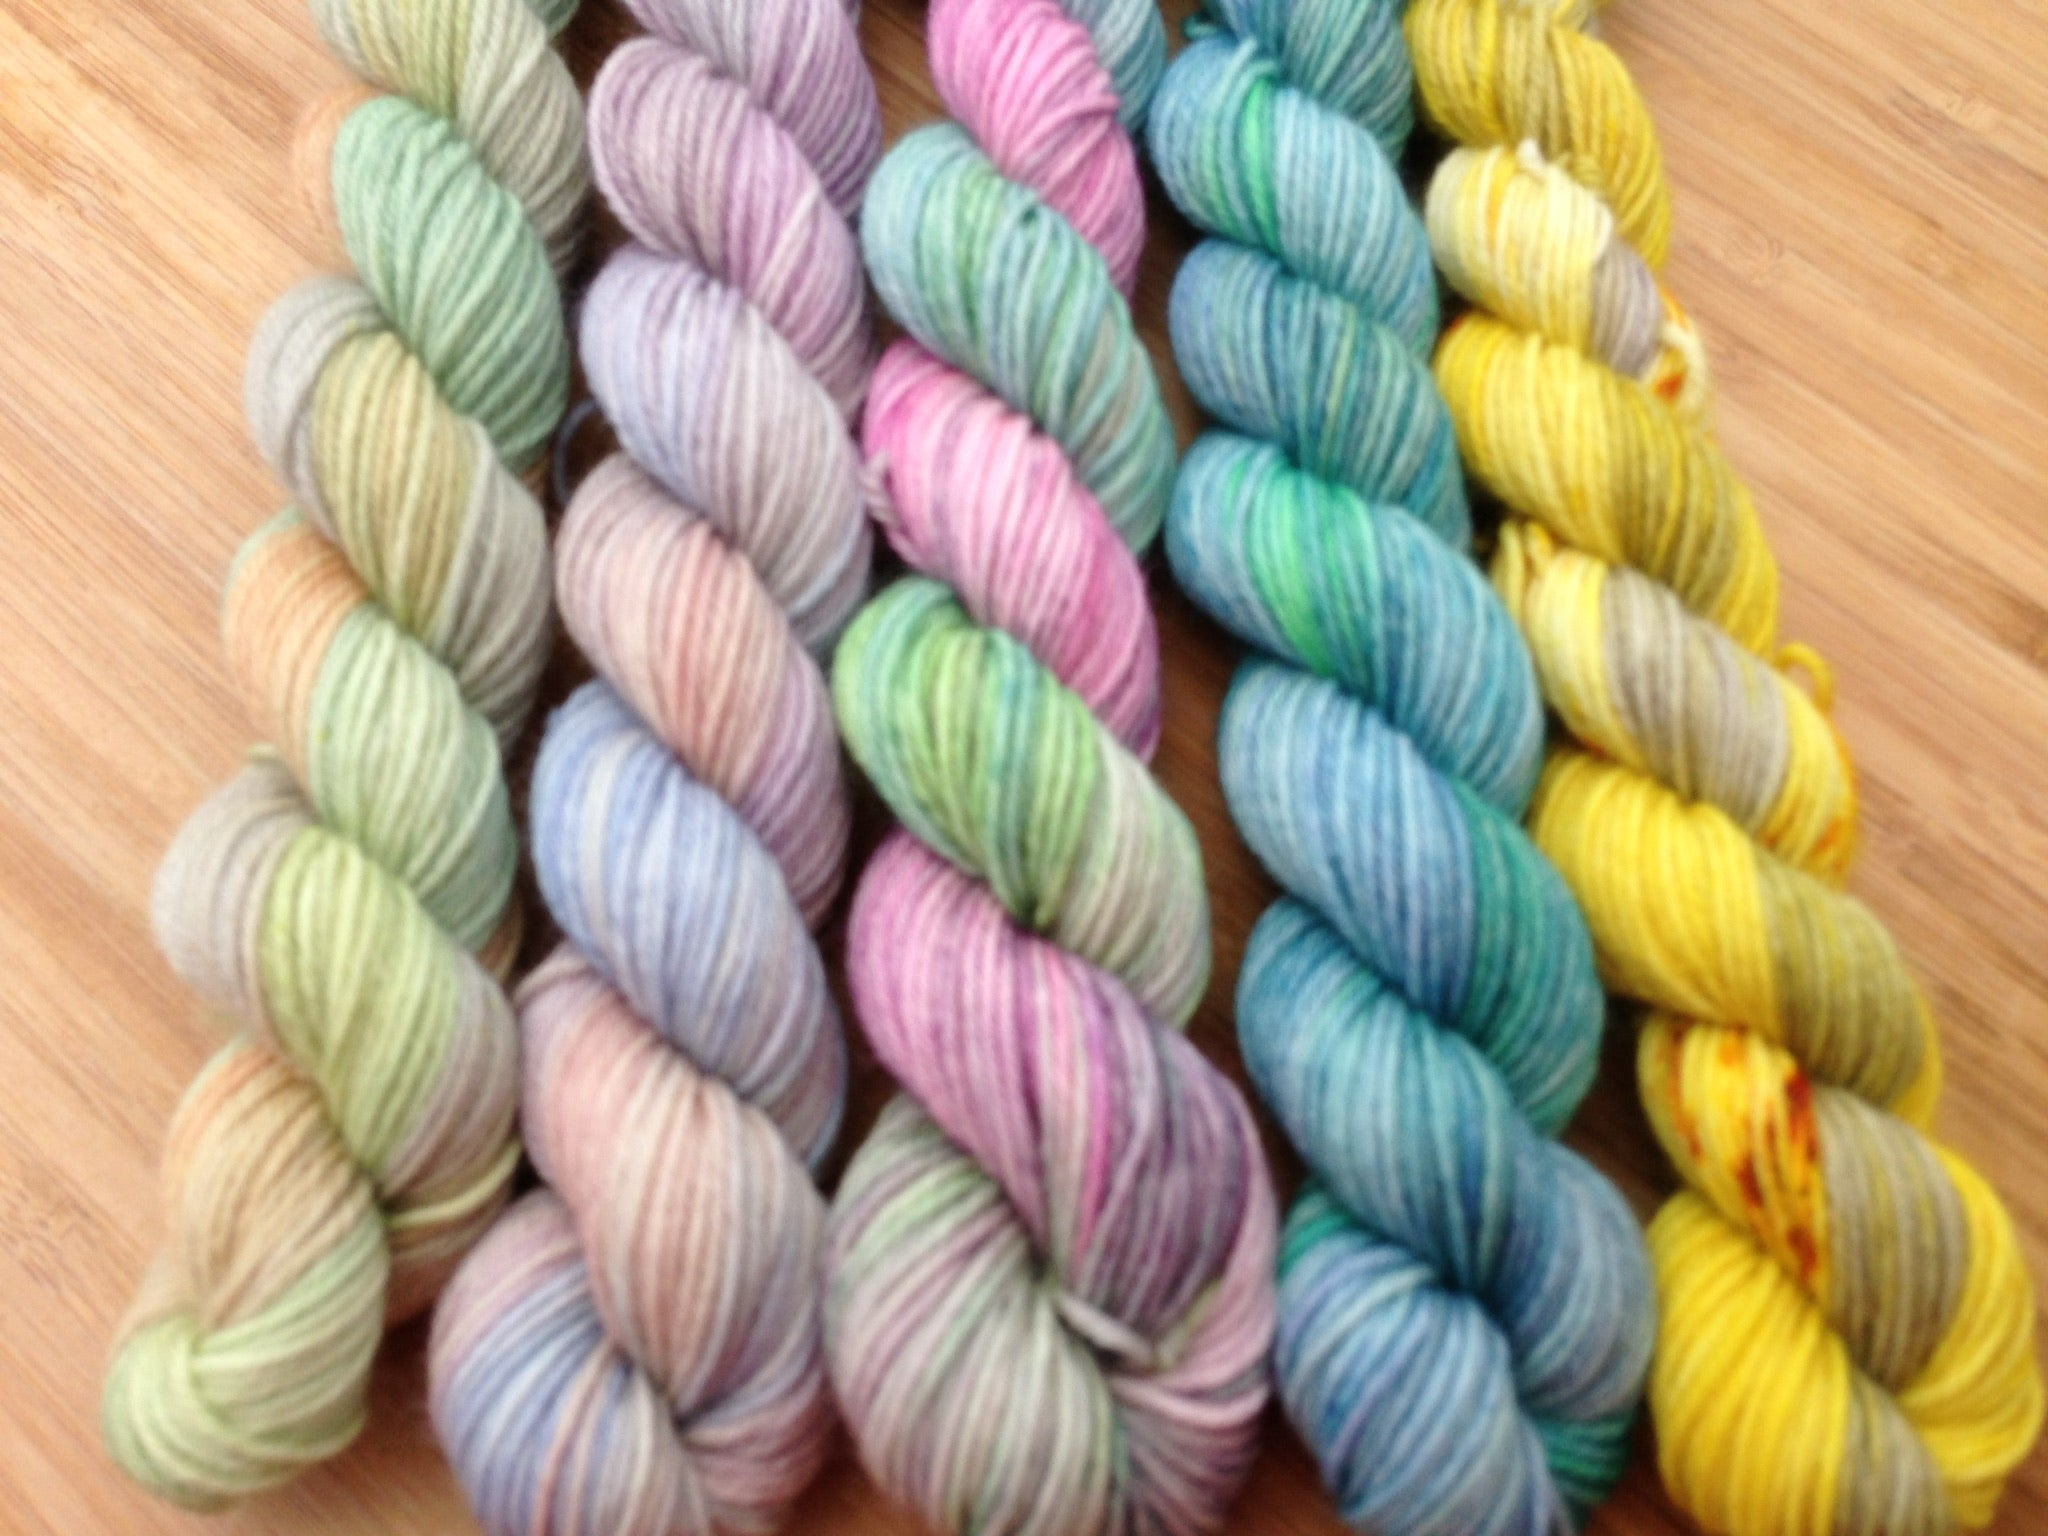 Fairytales & Folklore ~ Cwtch Base ~ Mini Skein Set